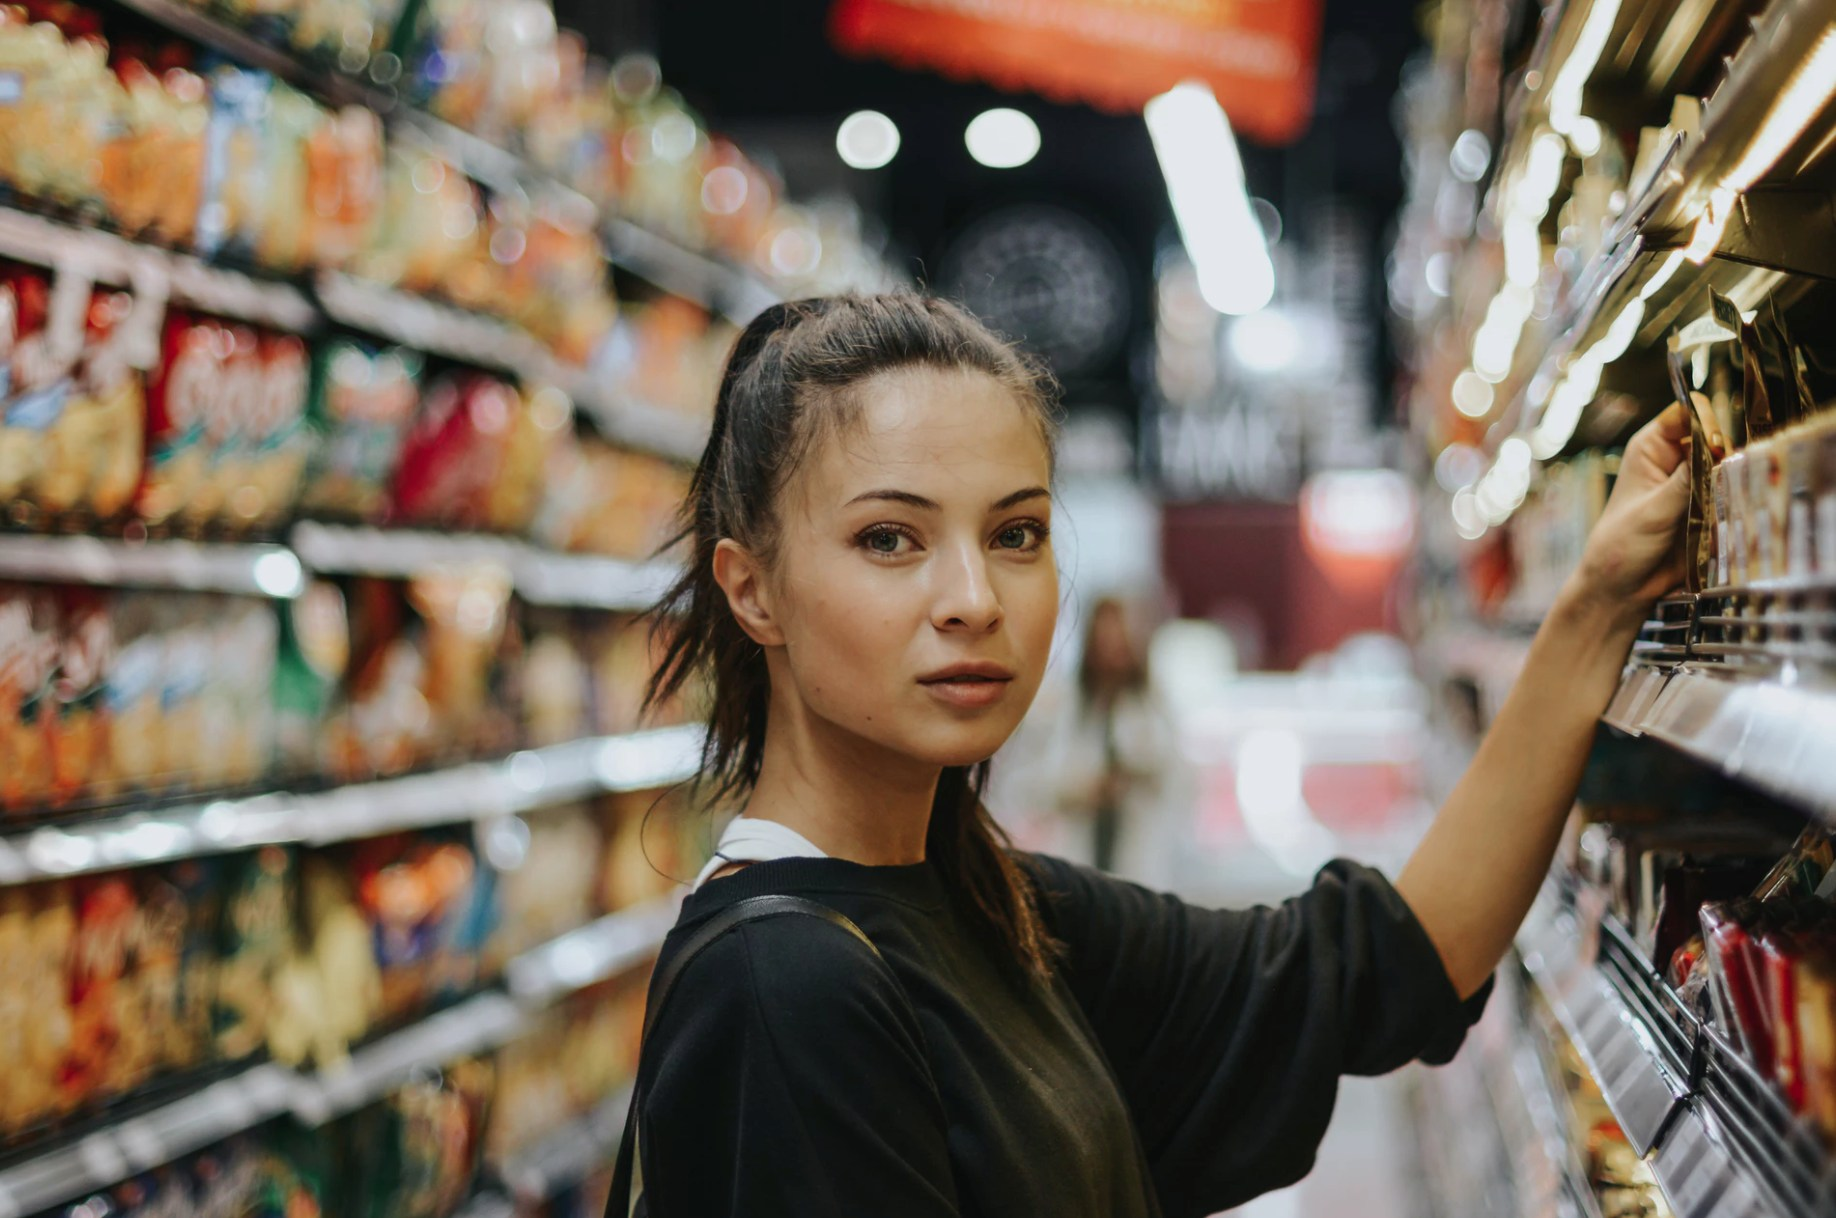 A woman shopping in the supermarket